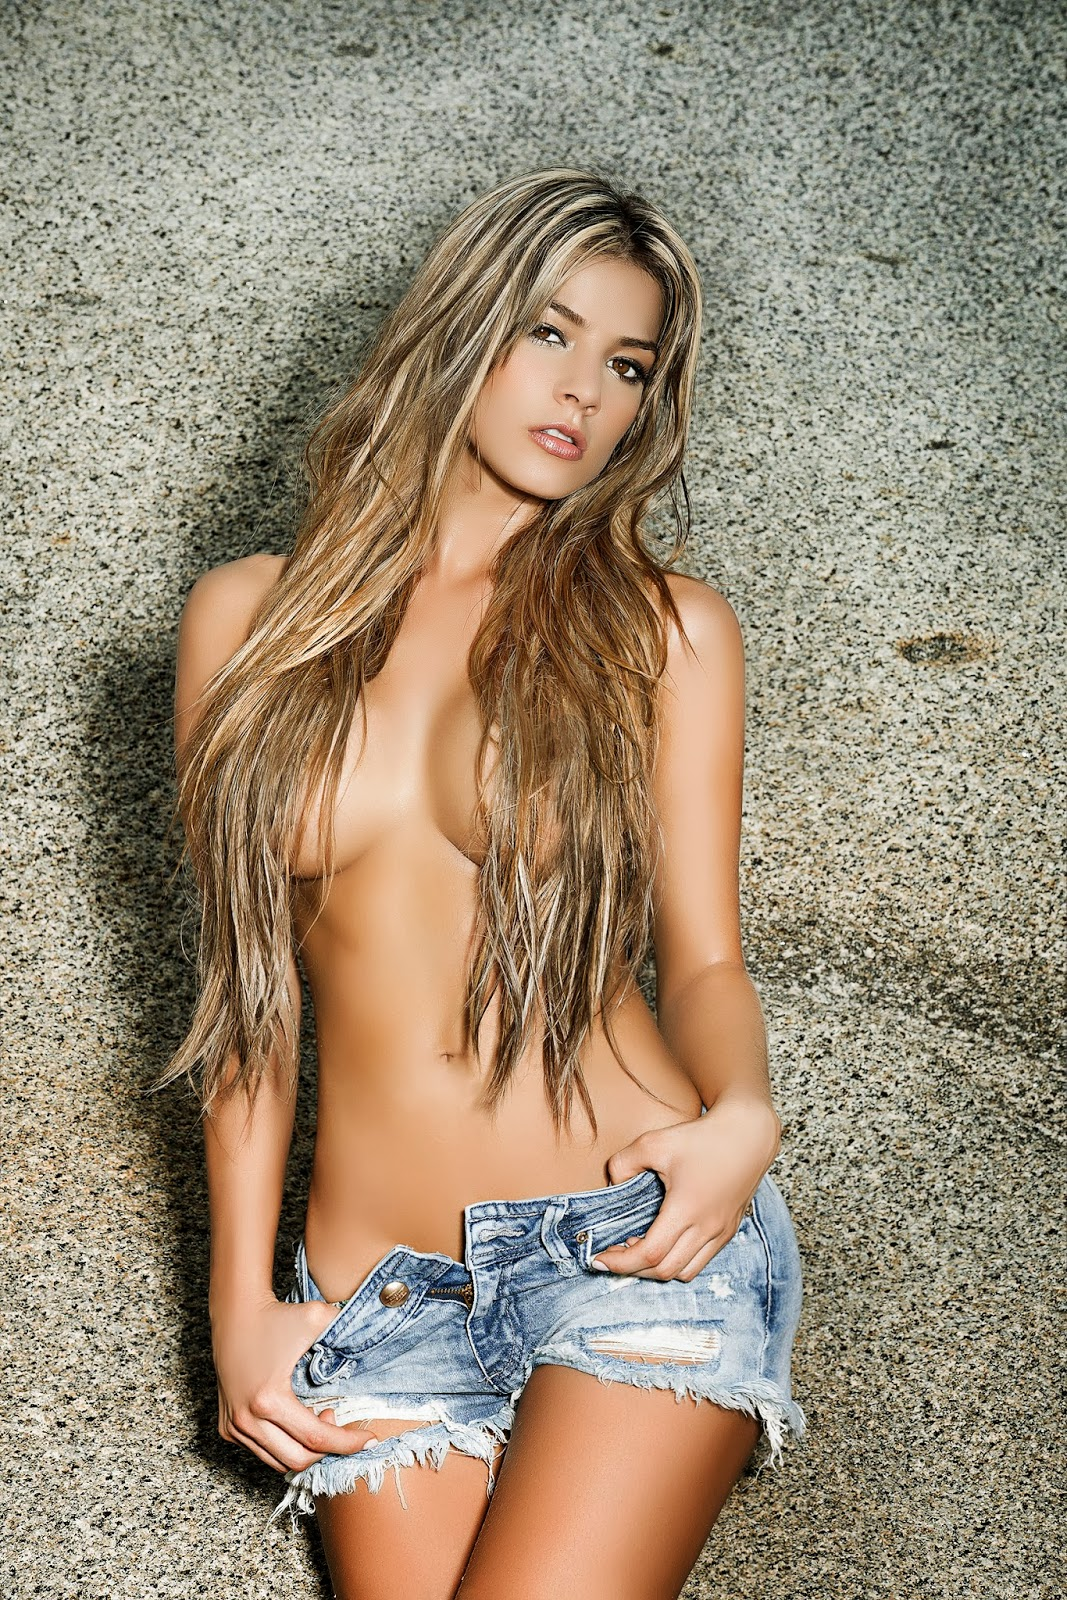 The most sexies naked women